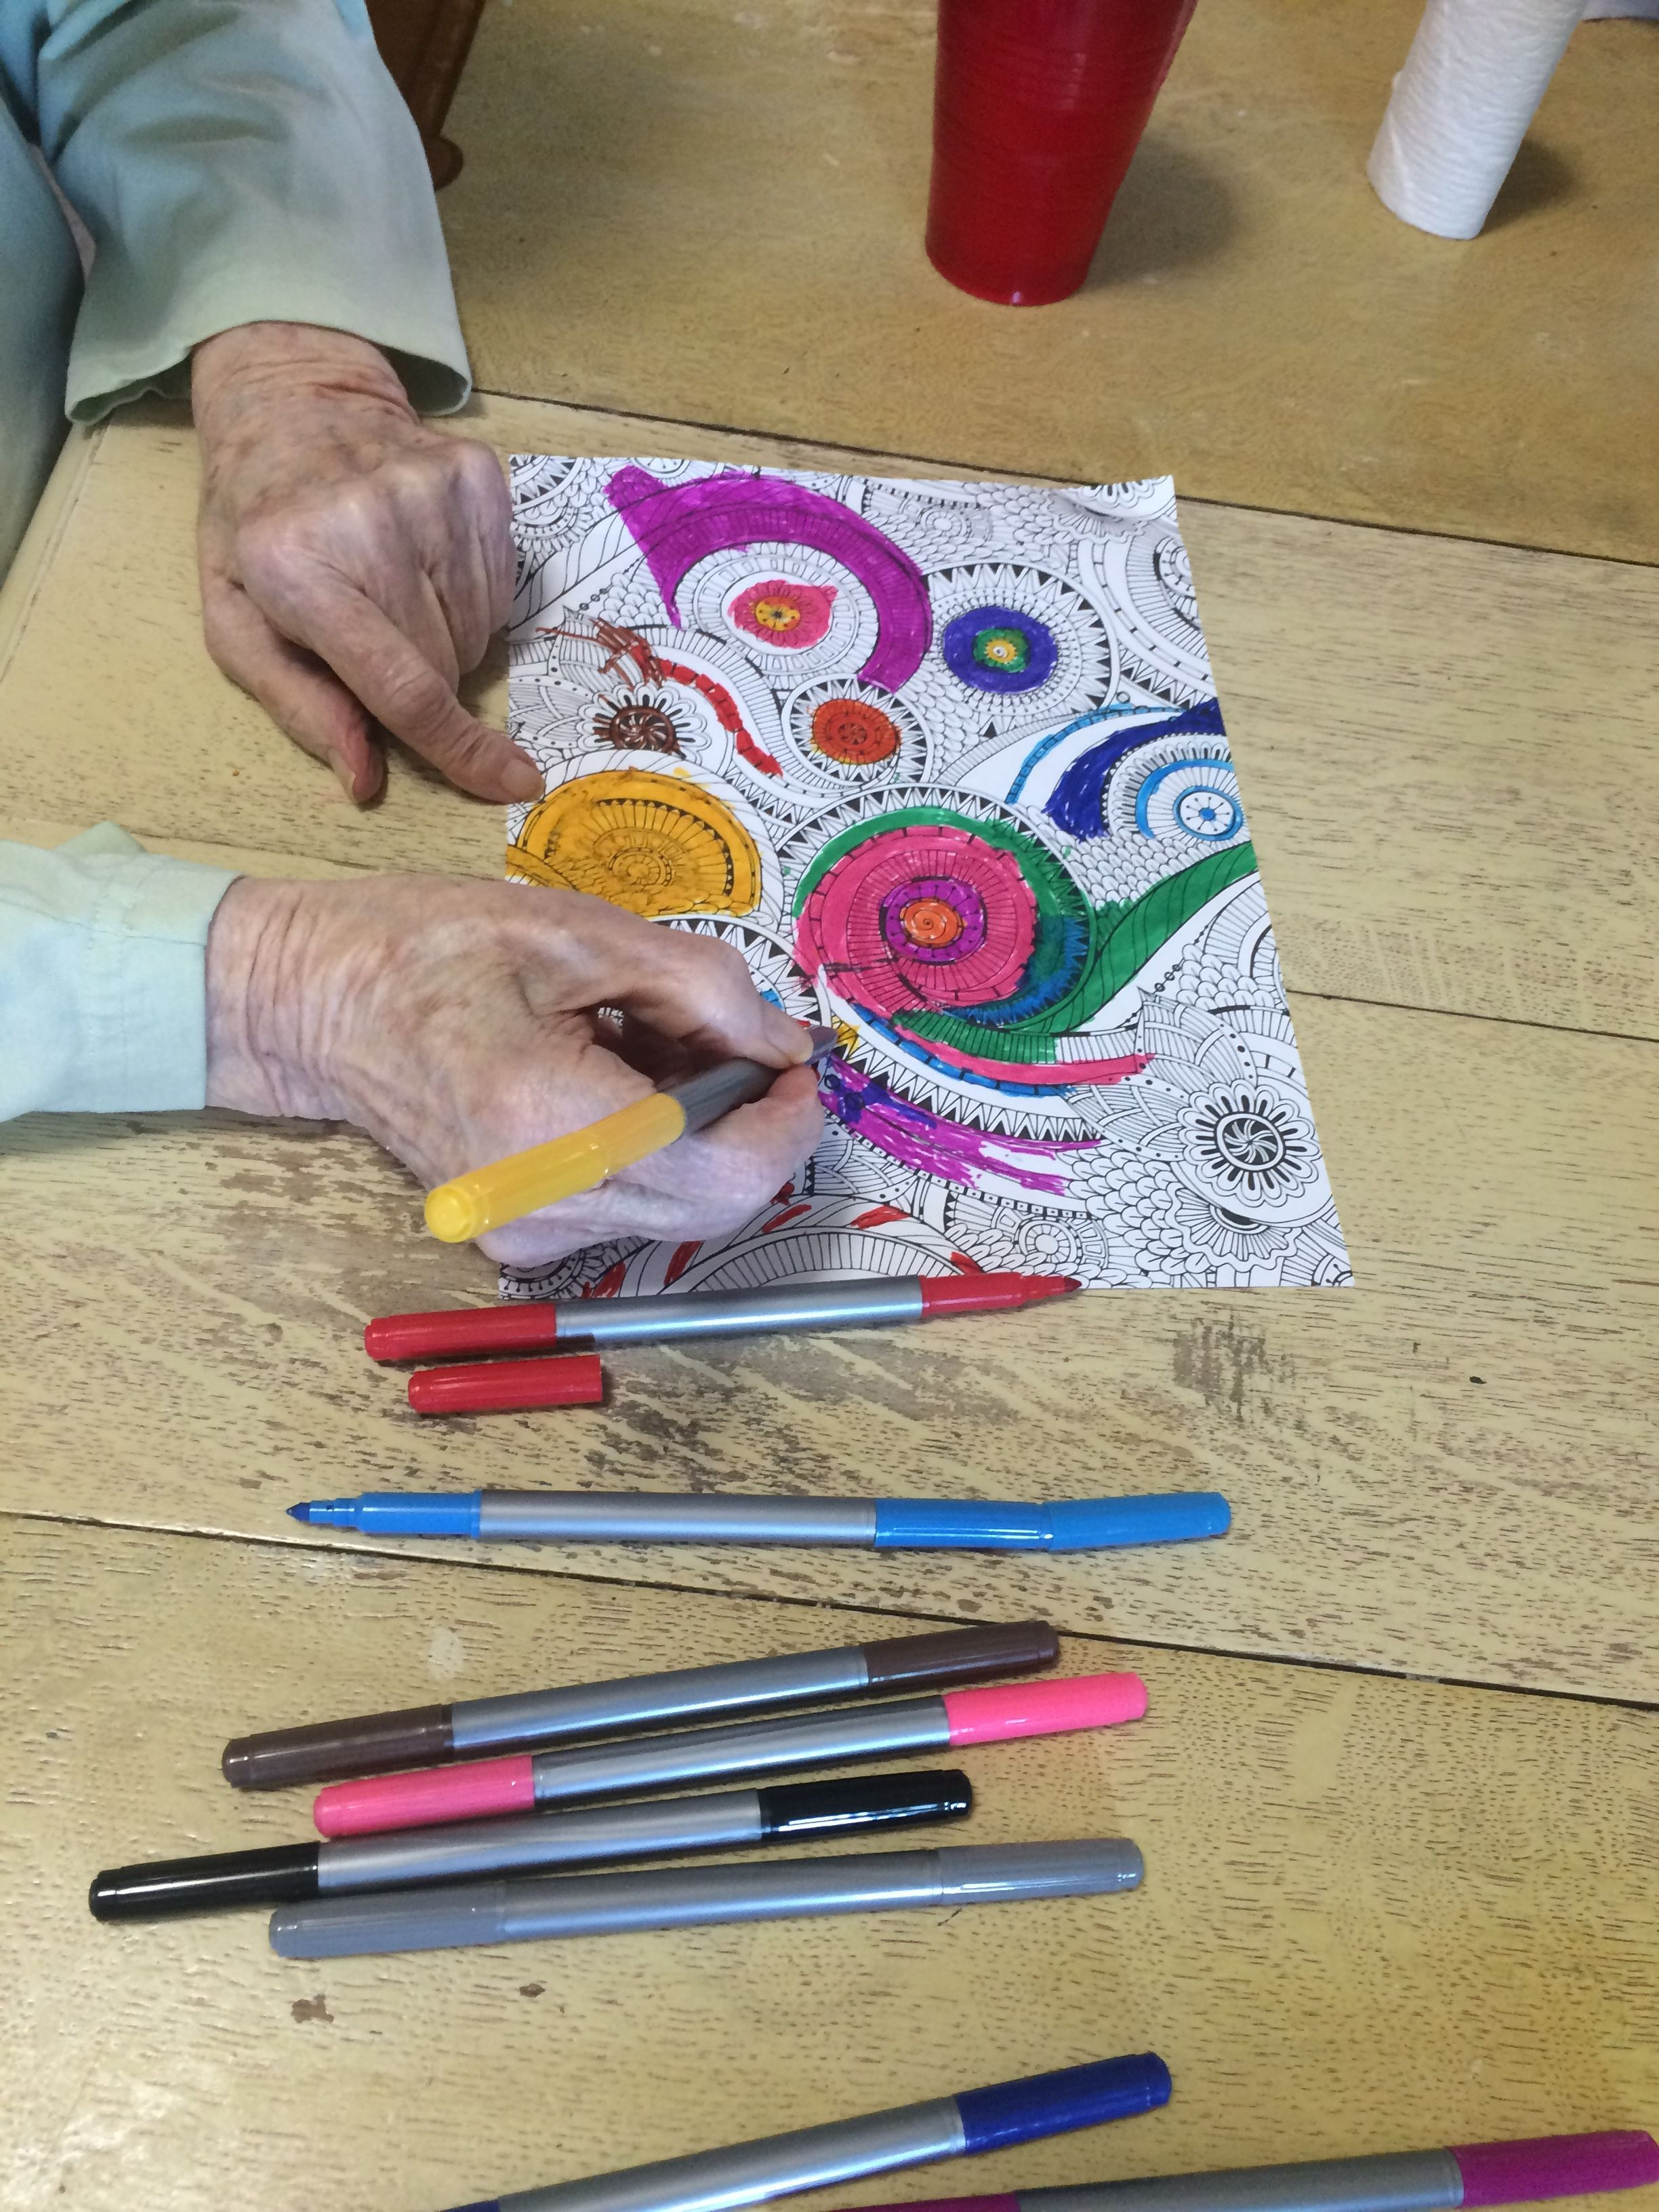 14+ Crafts for seniors with arthritis information